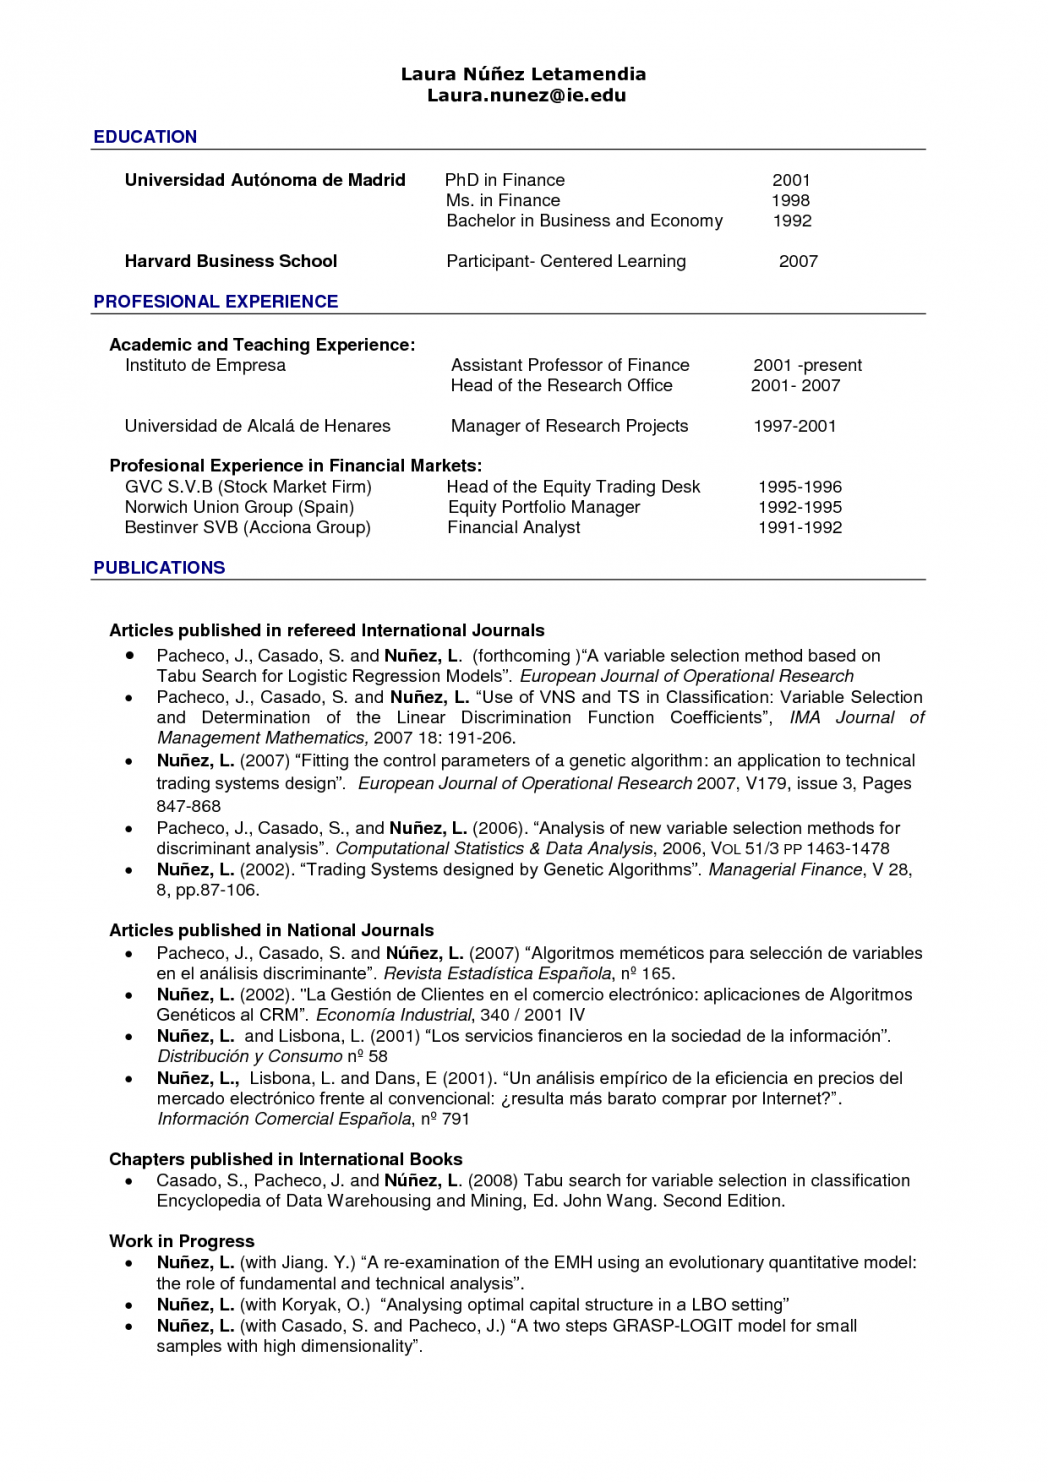 014 Cosy Harvard Mba Resume Format For Hbs Essays Business School Essay Length Made Applic Questions Word Count Analysis Tips Books Limit 1048x1482 Awful Advice Full